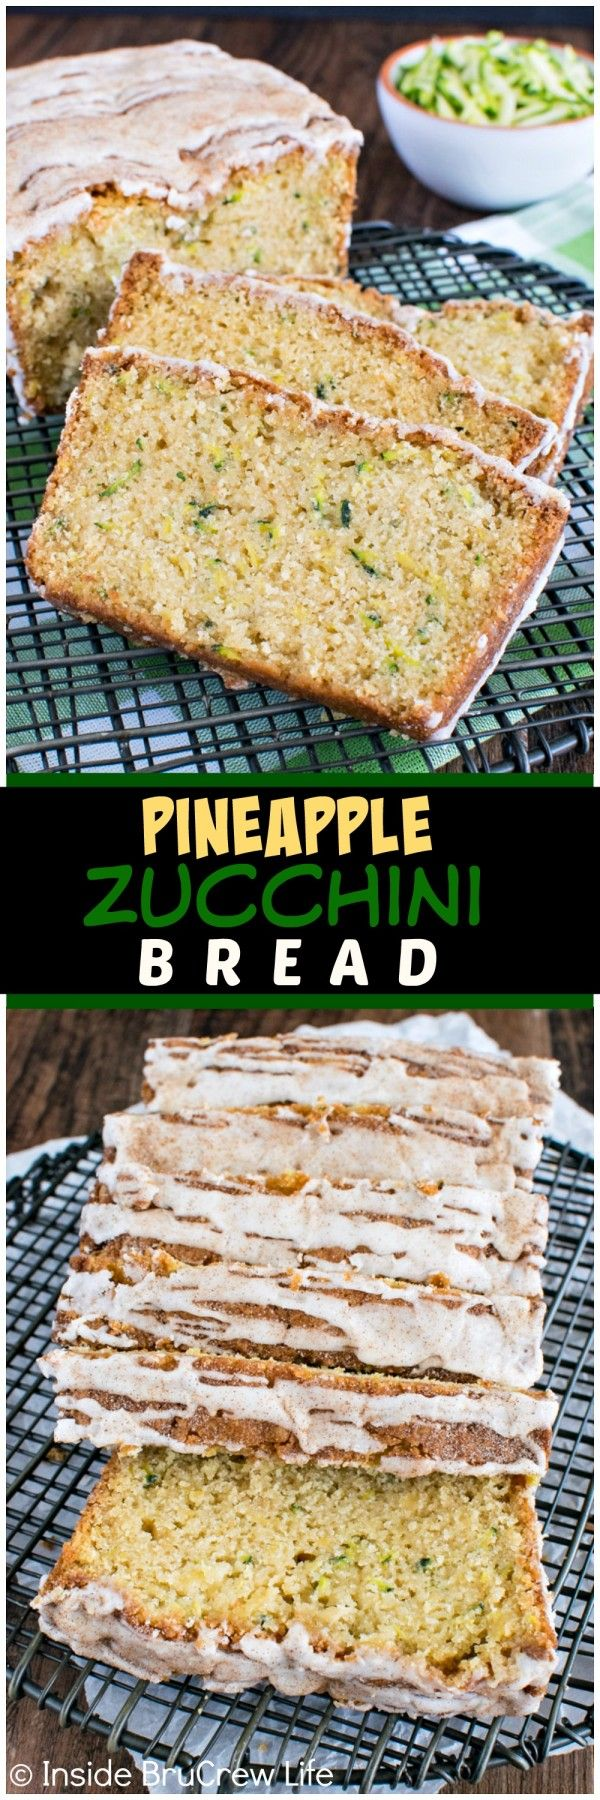 Pineapple Zucchini Bread - shredded pineapple and a pineapple glaze gives this sweet bread recipe a great tropical flavor!! It's a family favorite!